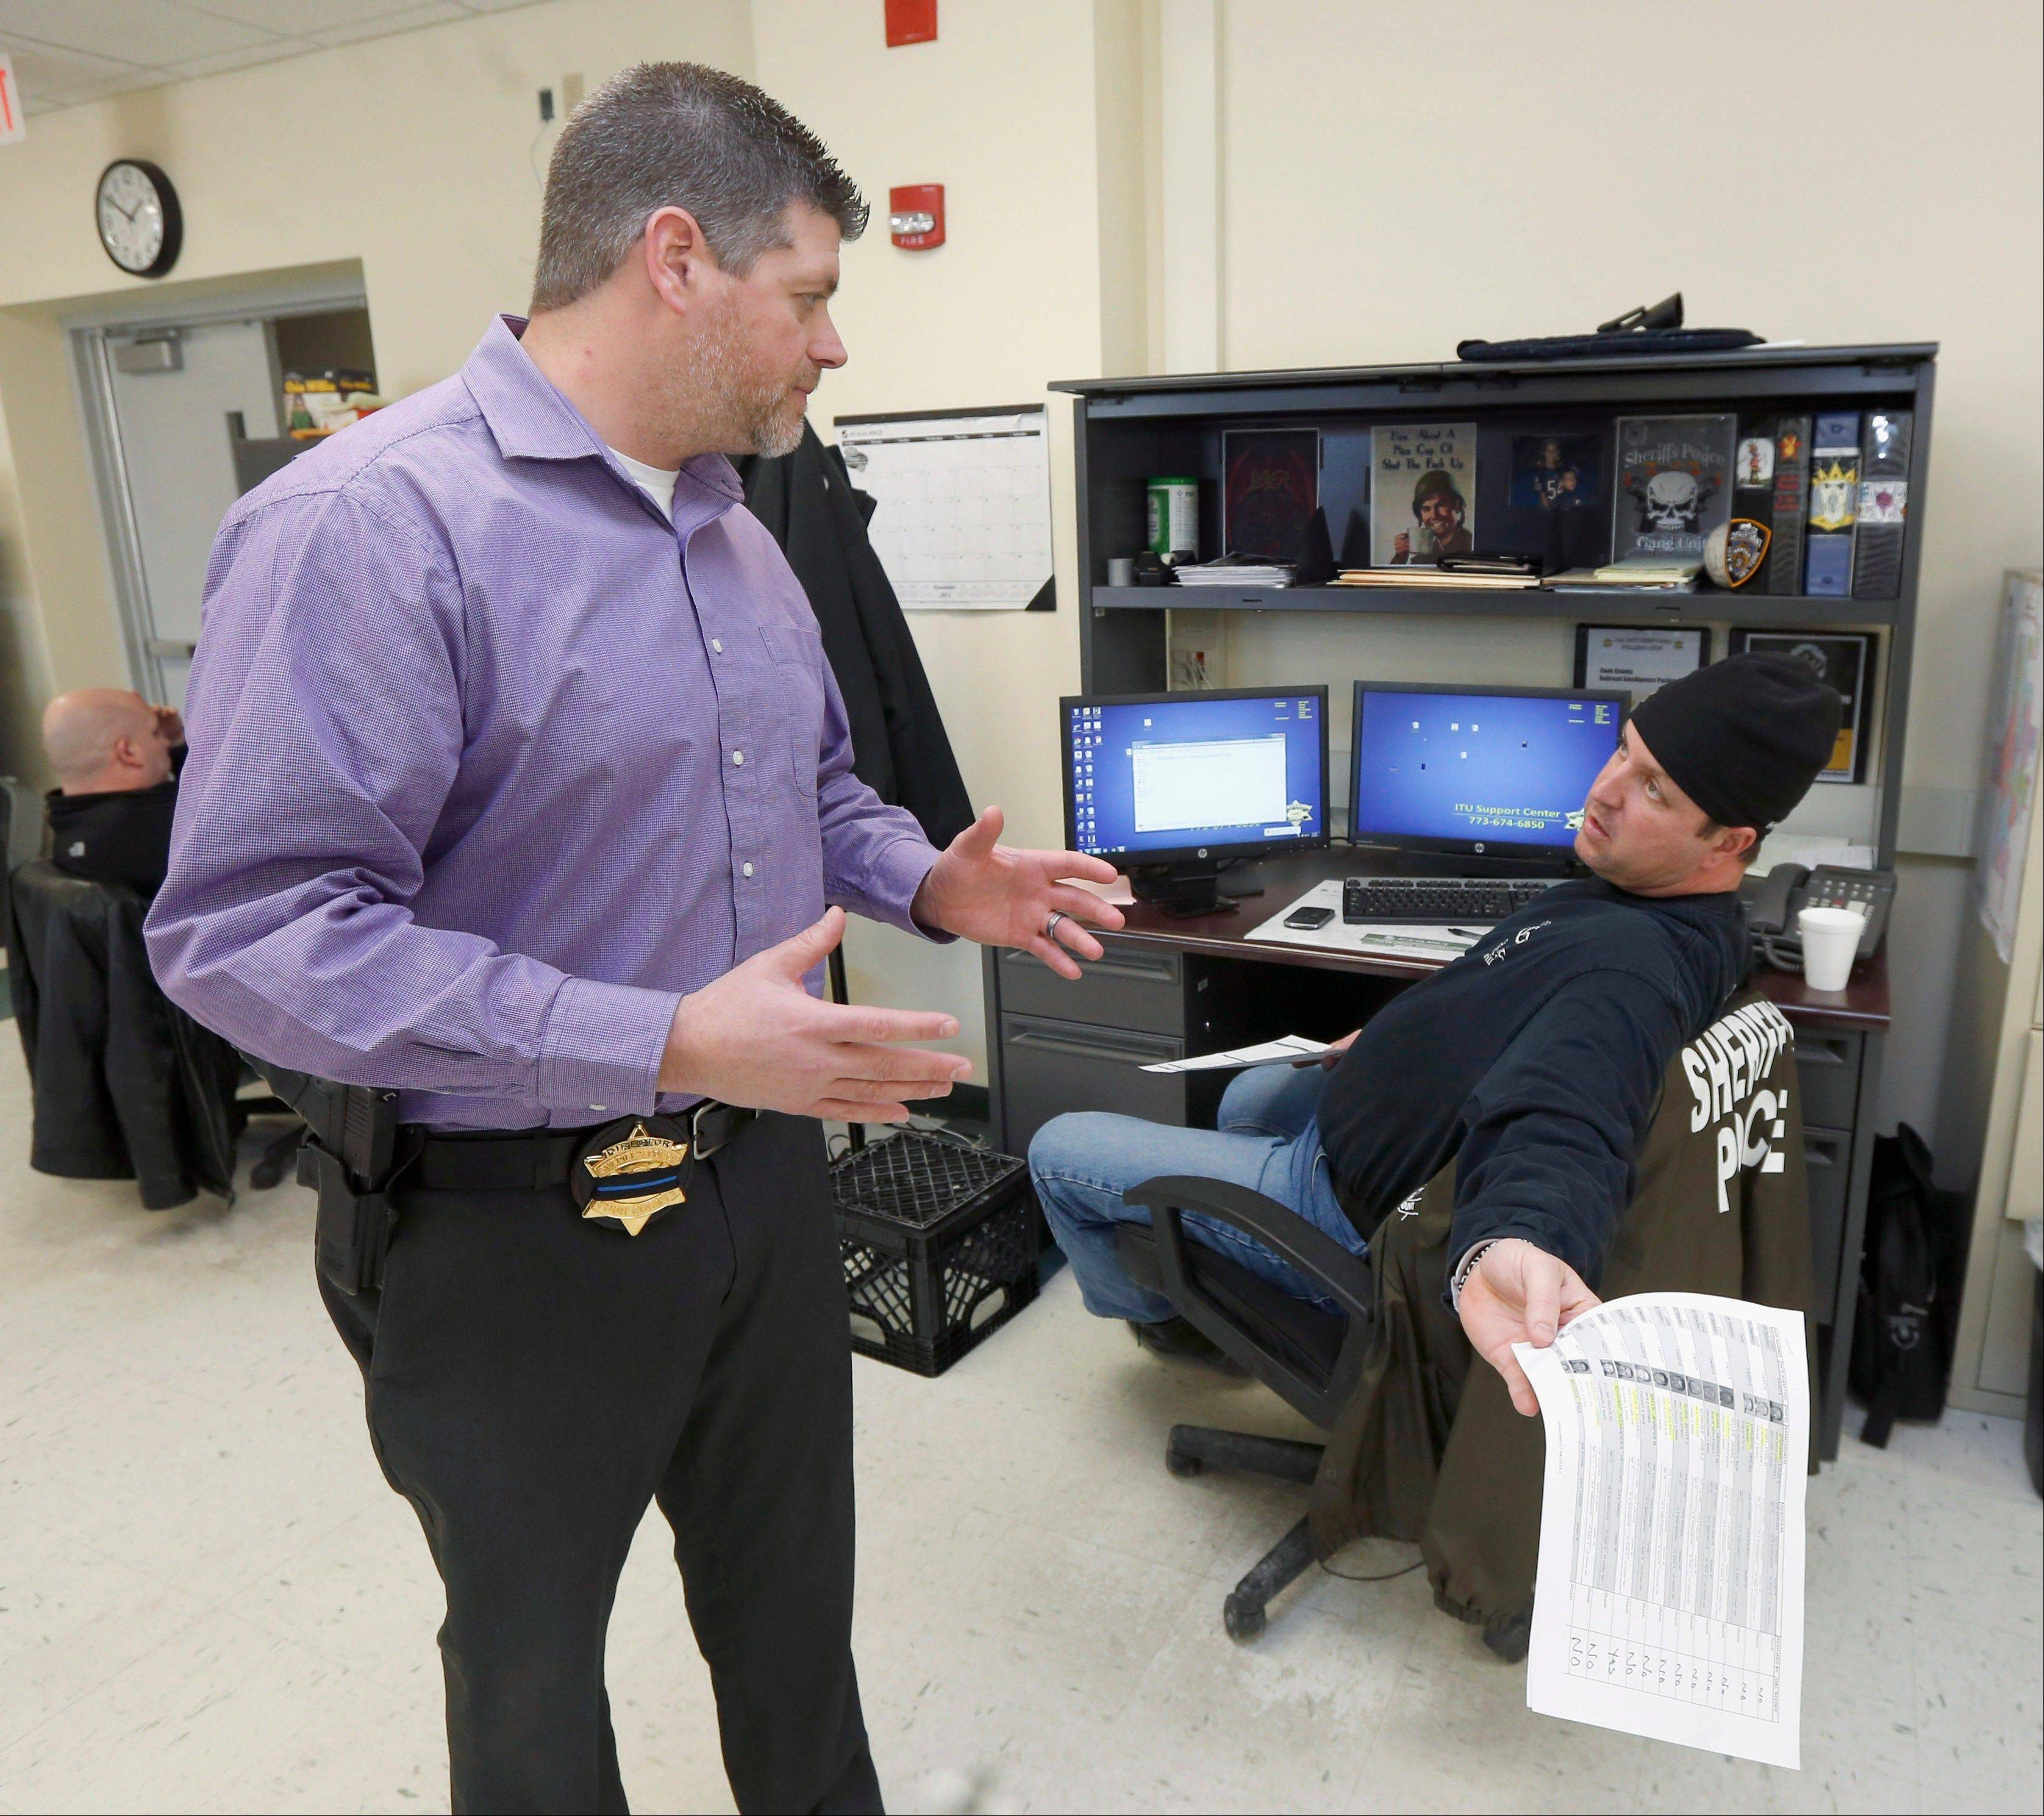 John Blair, left, executive director of the Cook County Sheriff's Office Intelligence Center, consults with officer John Slepski last week about a firearms background check Slepski is performing at the center.